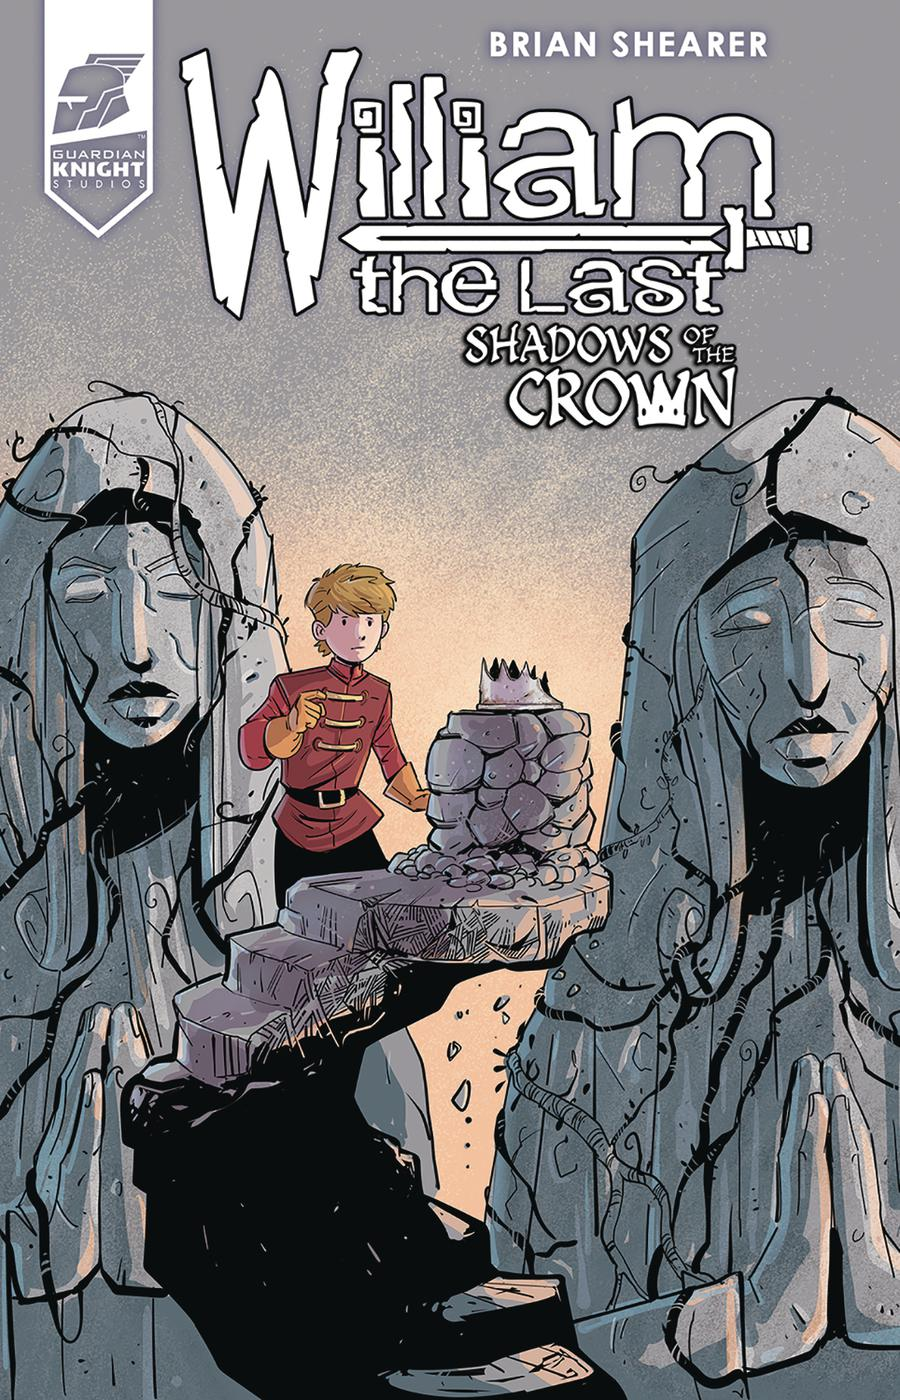 William The Last Shadows Of The Crown #1